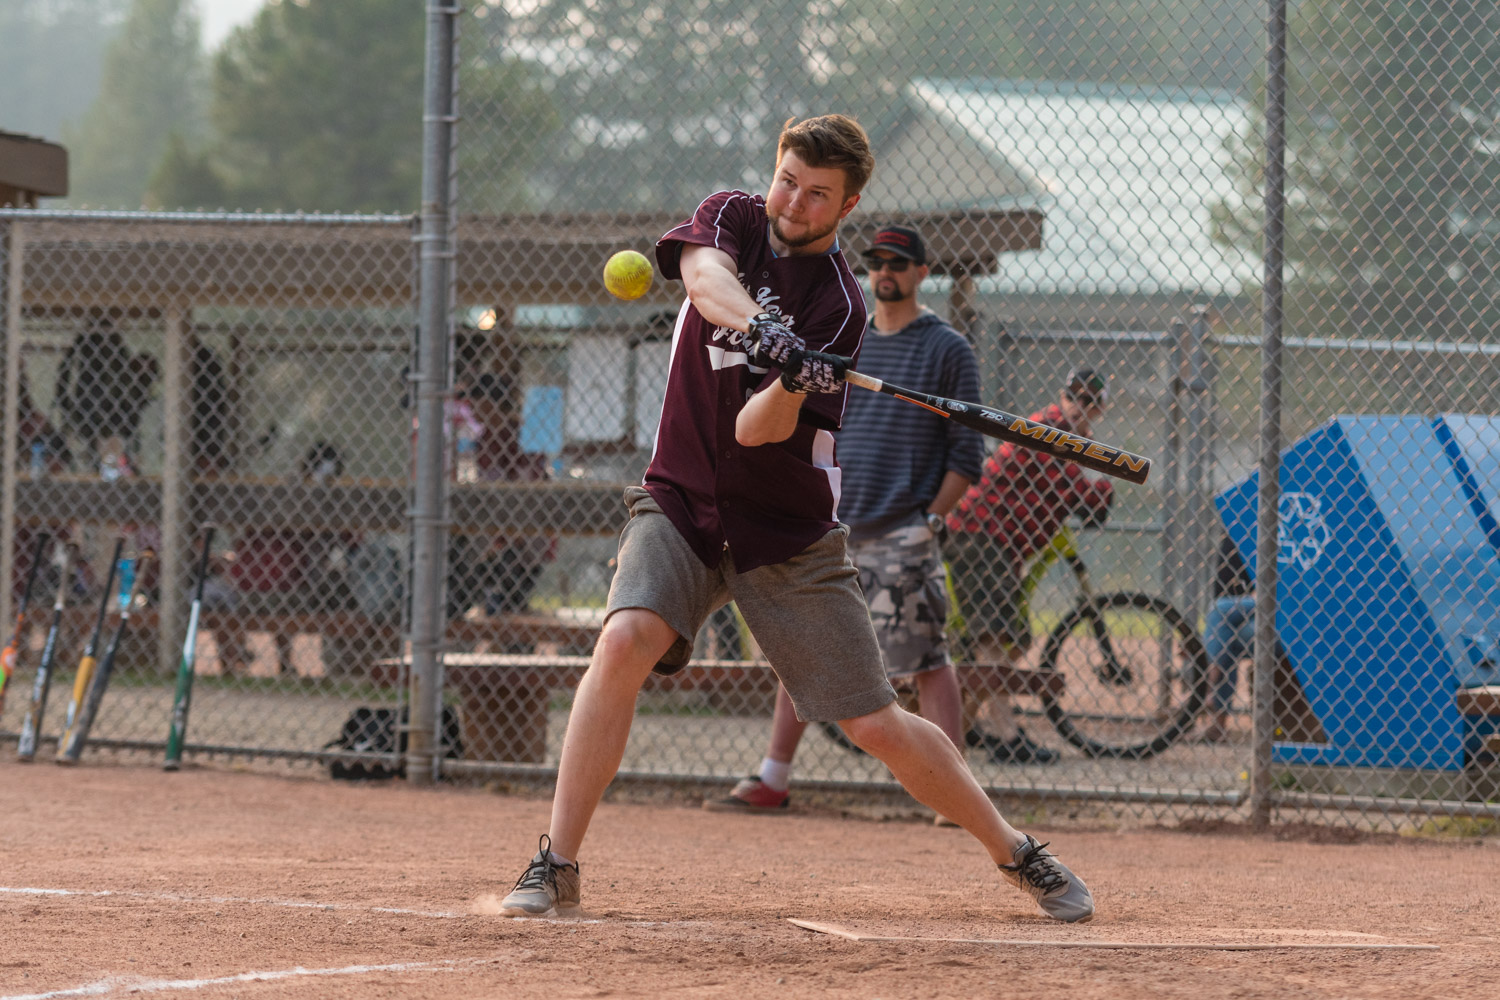 Another softball photo, one of my favourites of the year.